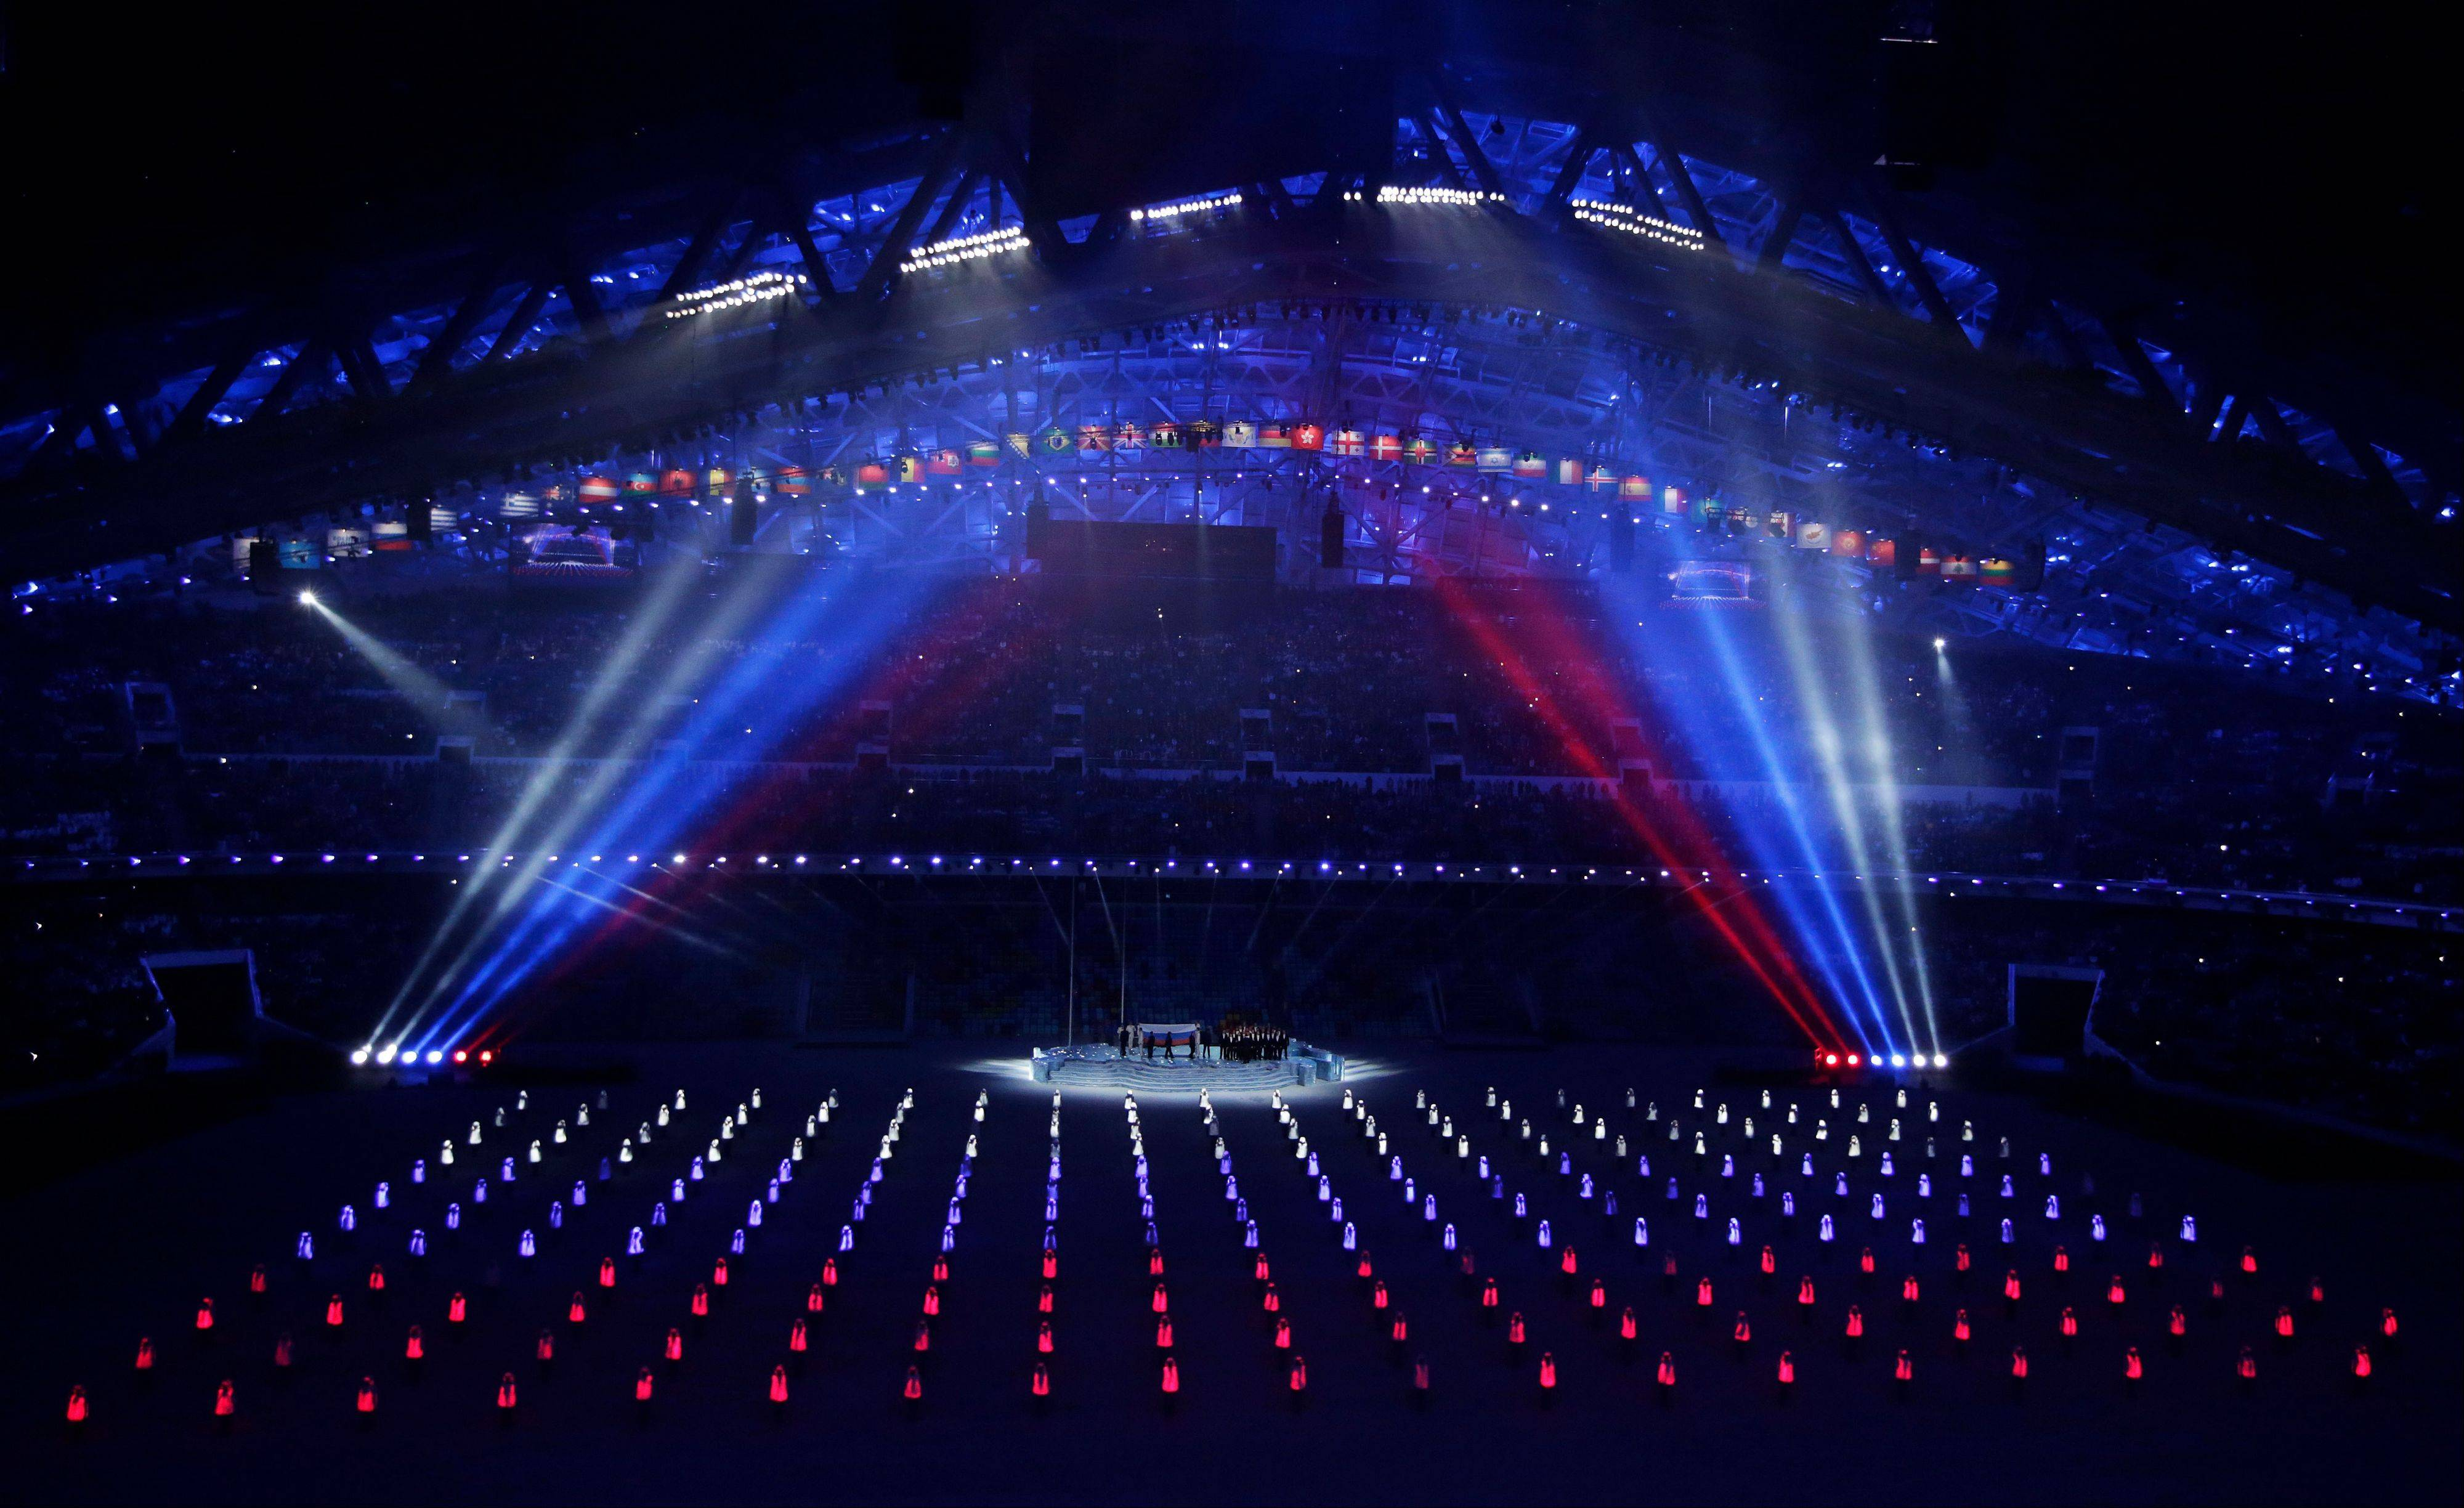 Performers wearing illuminated suits create the Russian flag during the opening ceremony.